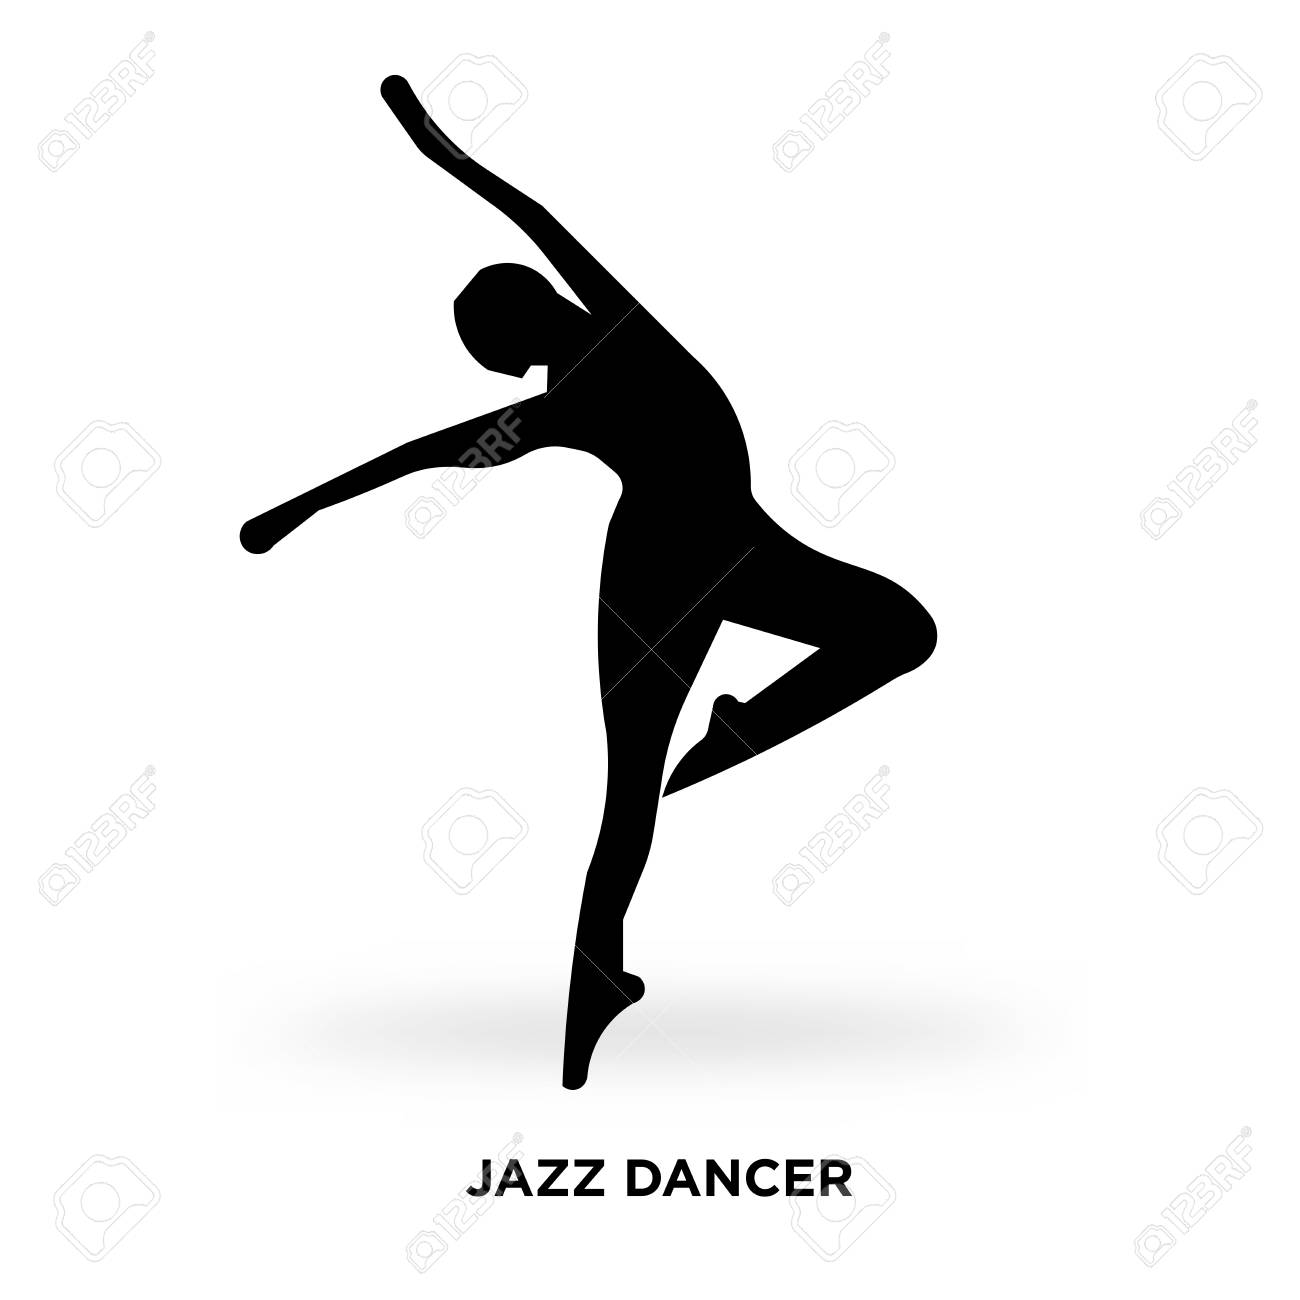 Jazz Dancer Silhouette Vector Illustration Royalty Free Cliparts Vectors And Stock Illustration Image 96222027